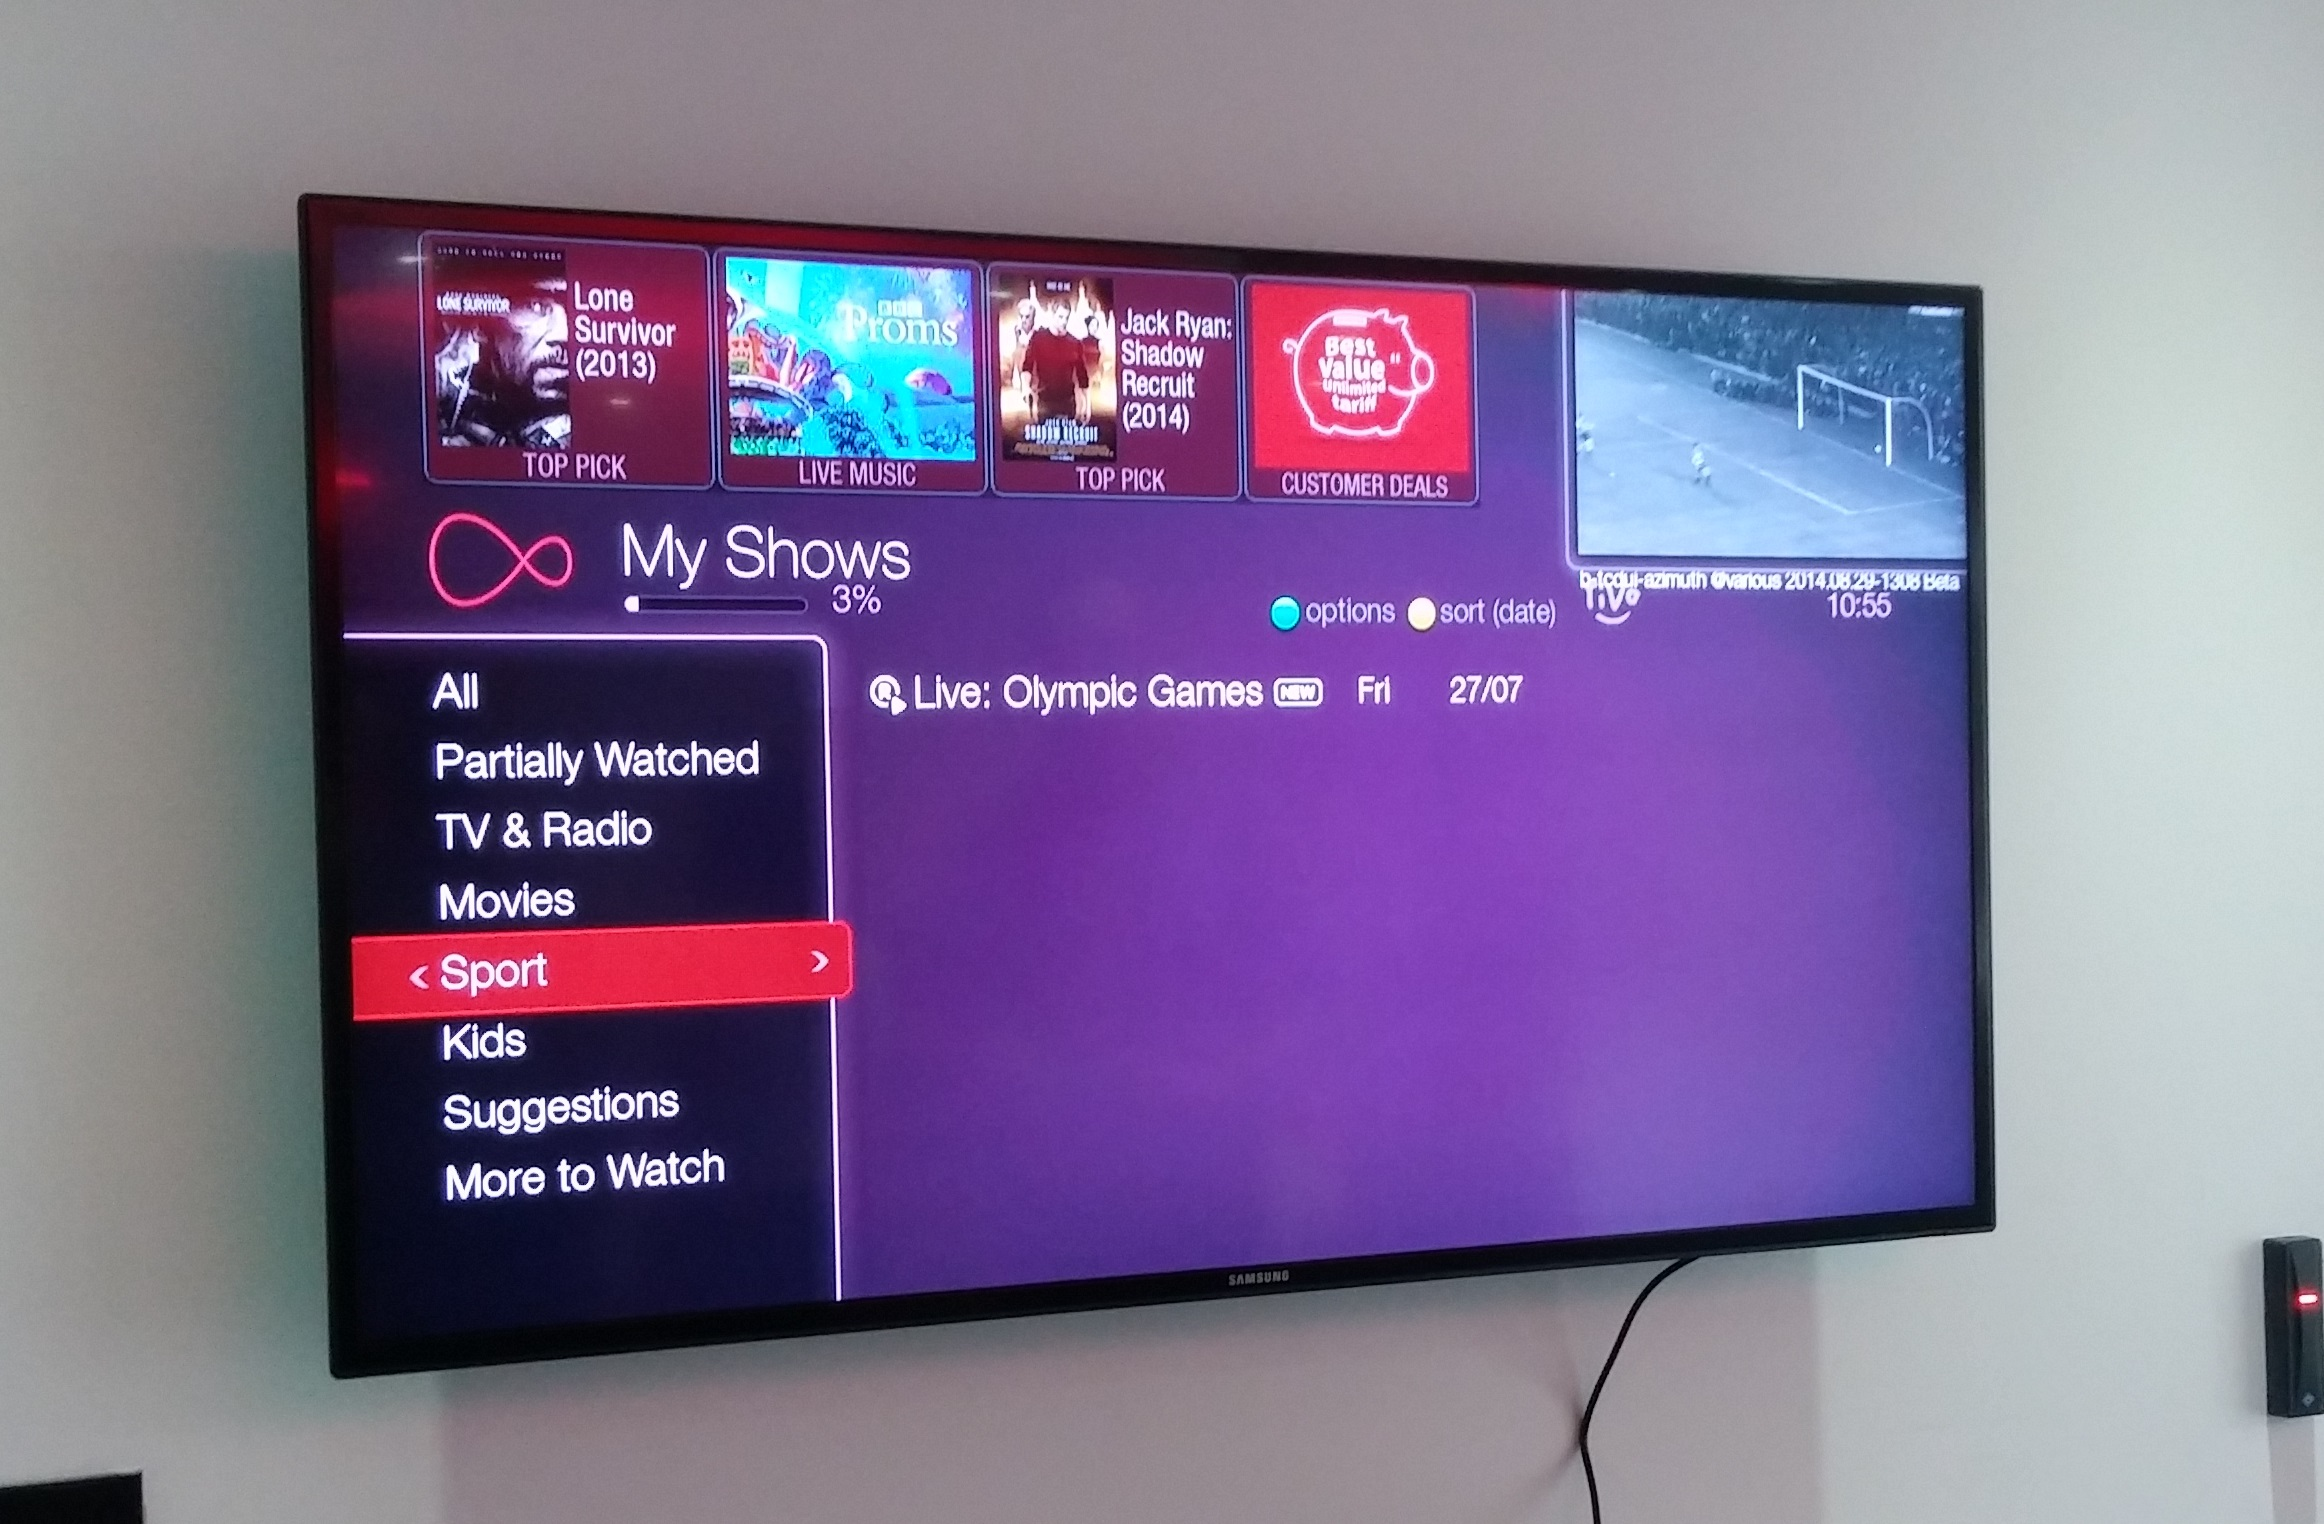 Virgin Media Completely Overhauls TiVo UI and Navigation